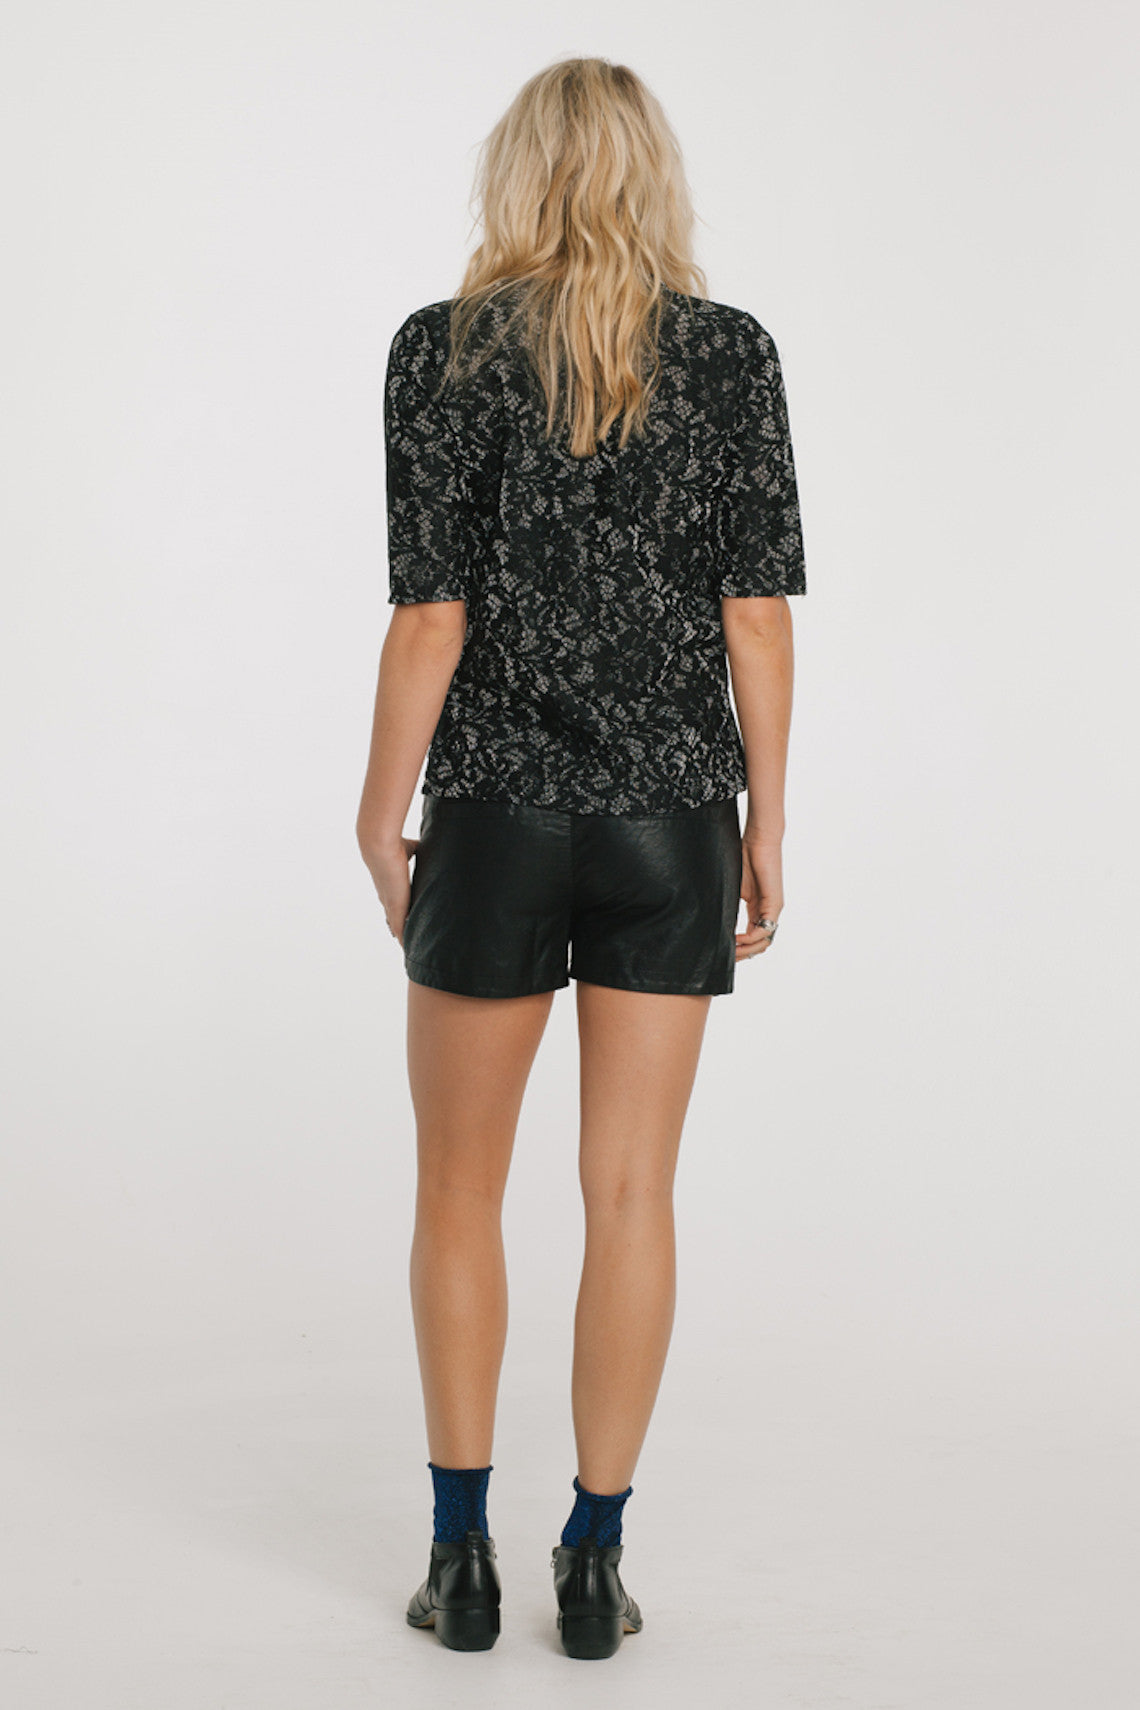 Gabby Shorts-Women - Apparel - Shorts - Casual-Product Details Cotton Lining & Polyurethane shell Faux leather shorts featuring a drawstring waist Model is wearing a size Small Hand wash cold, lay flat to dry Easy Measure Conversion XS/0 S/1 M/2 L/3 US 0/2 2/4 6/8 8/10 AUS 4/6 6/8 10/12 12/14 BRAZIL 34/36 36/38 40/42 42/44 CHINA 76a/80a 80a/84a 88a/92a 92a/95a EUP 32/34 34/36 38/40 40/42 JAP 5/7 7/9 11/13 13/15 RUS 42 42/44 46/48 50/52 UK 4/6 6/8 10/12 12/14 Detailed View Size Chart-Keyomi-Sook